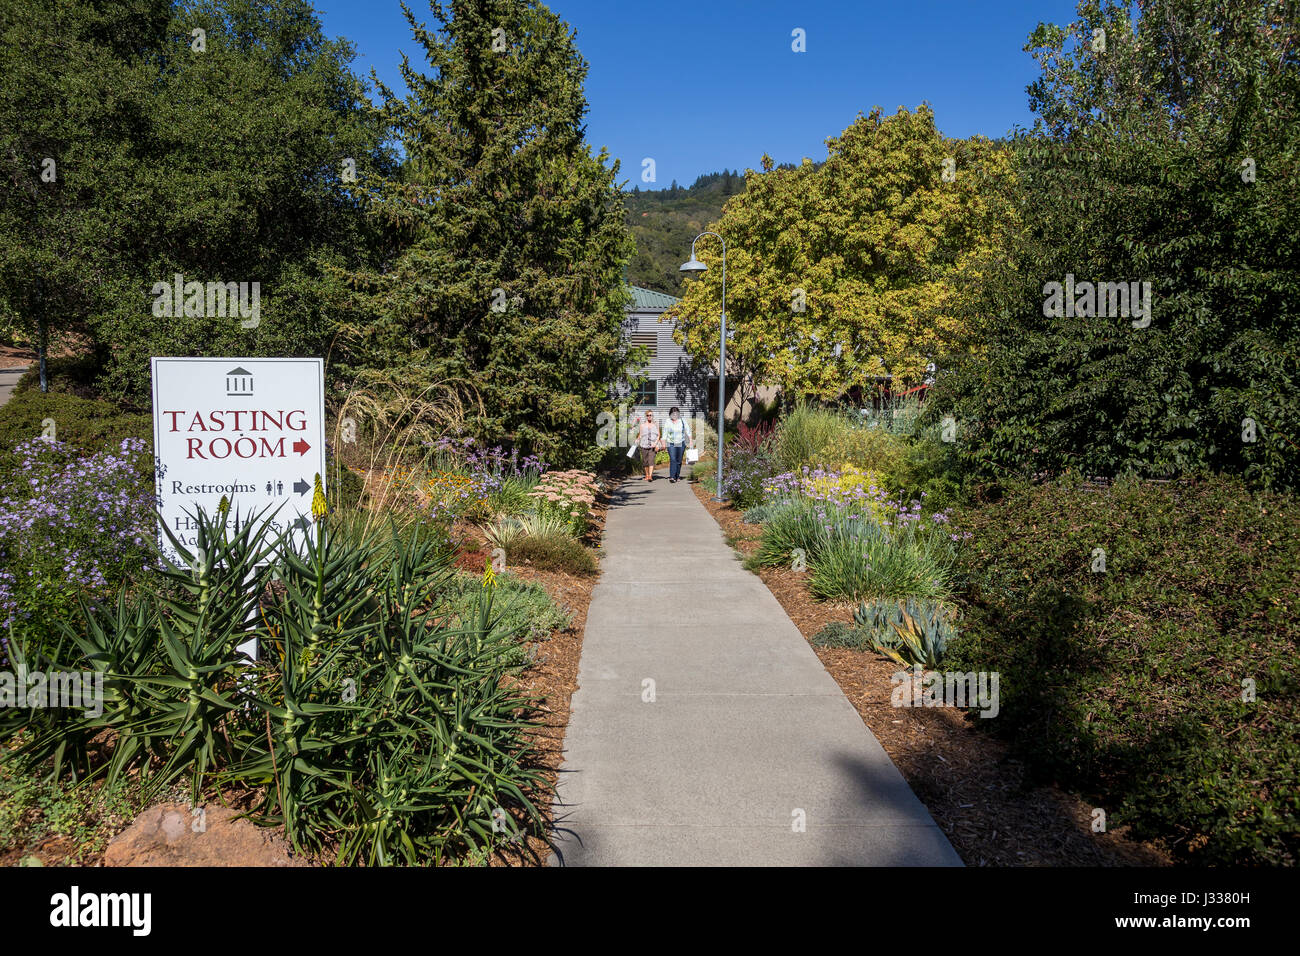 people, tourists, wine tasting room, Imagery Estate Winery, Glen Ellen, Sonoma Valley, Sonoma County, California - Stock Image